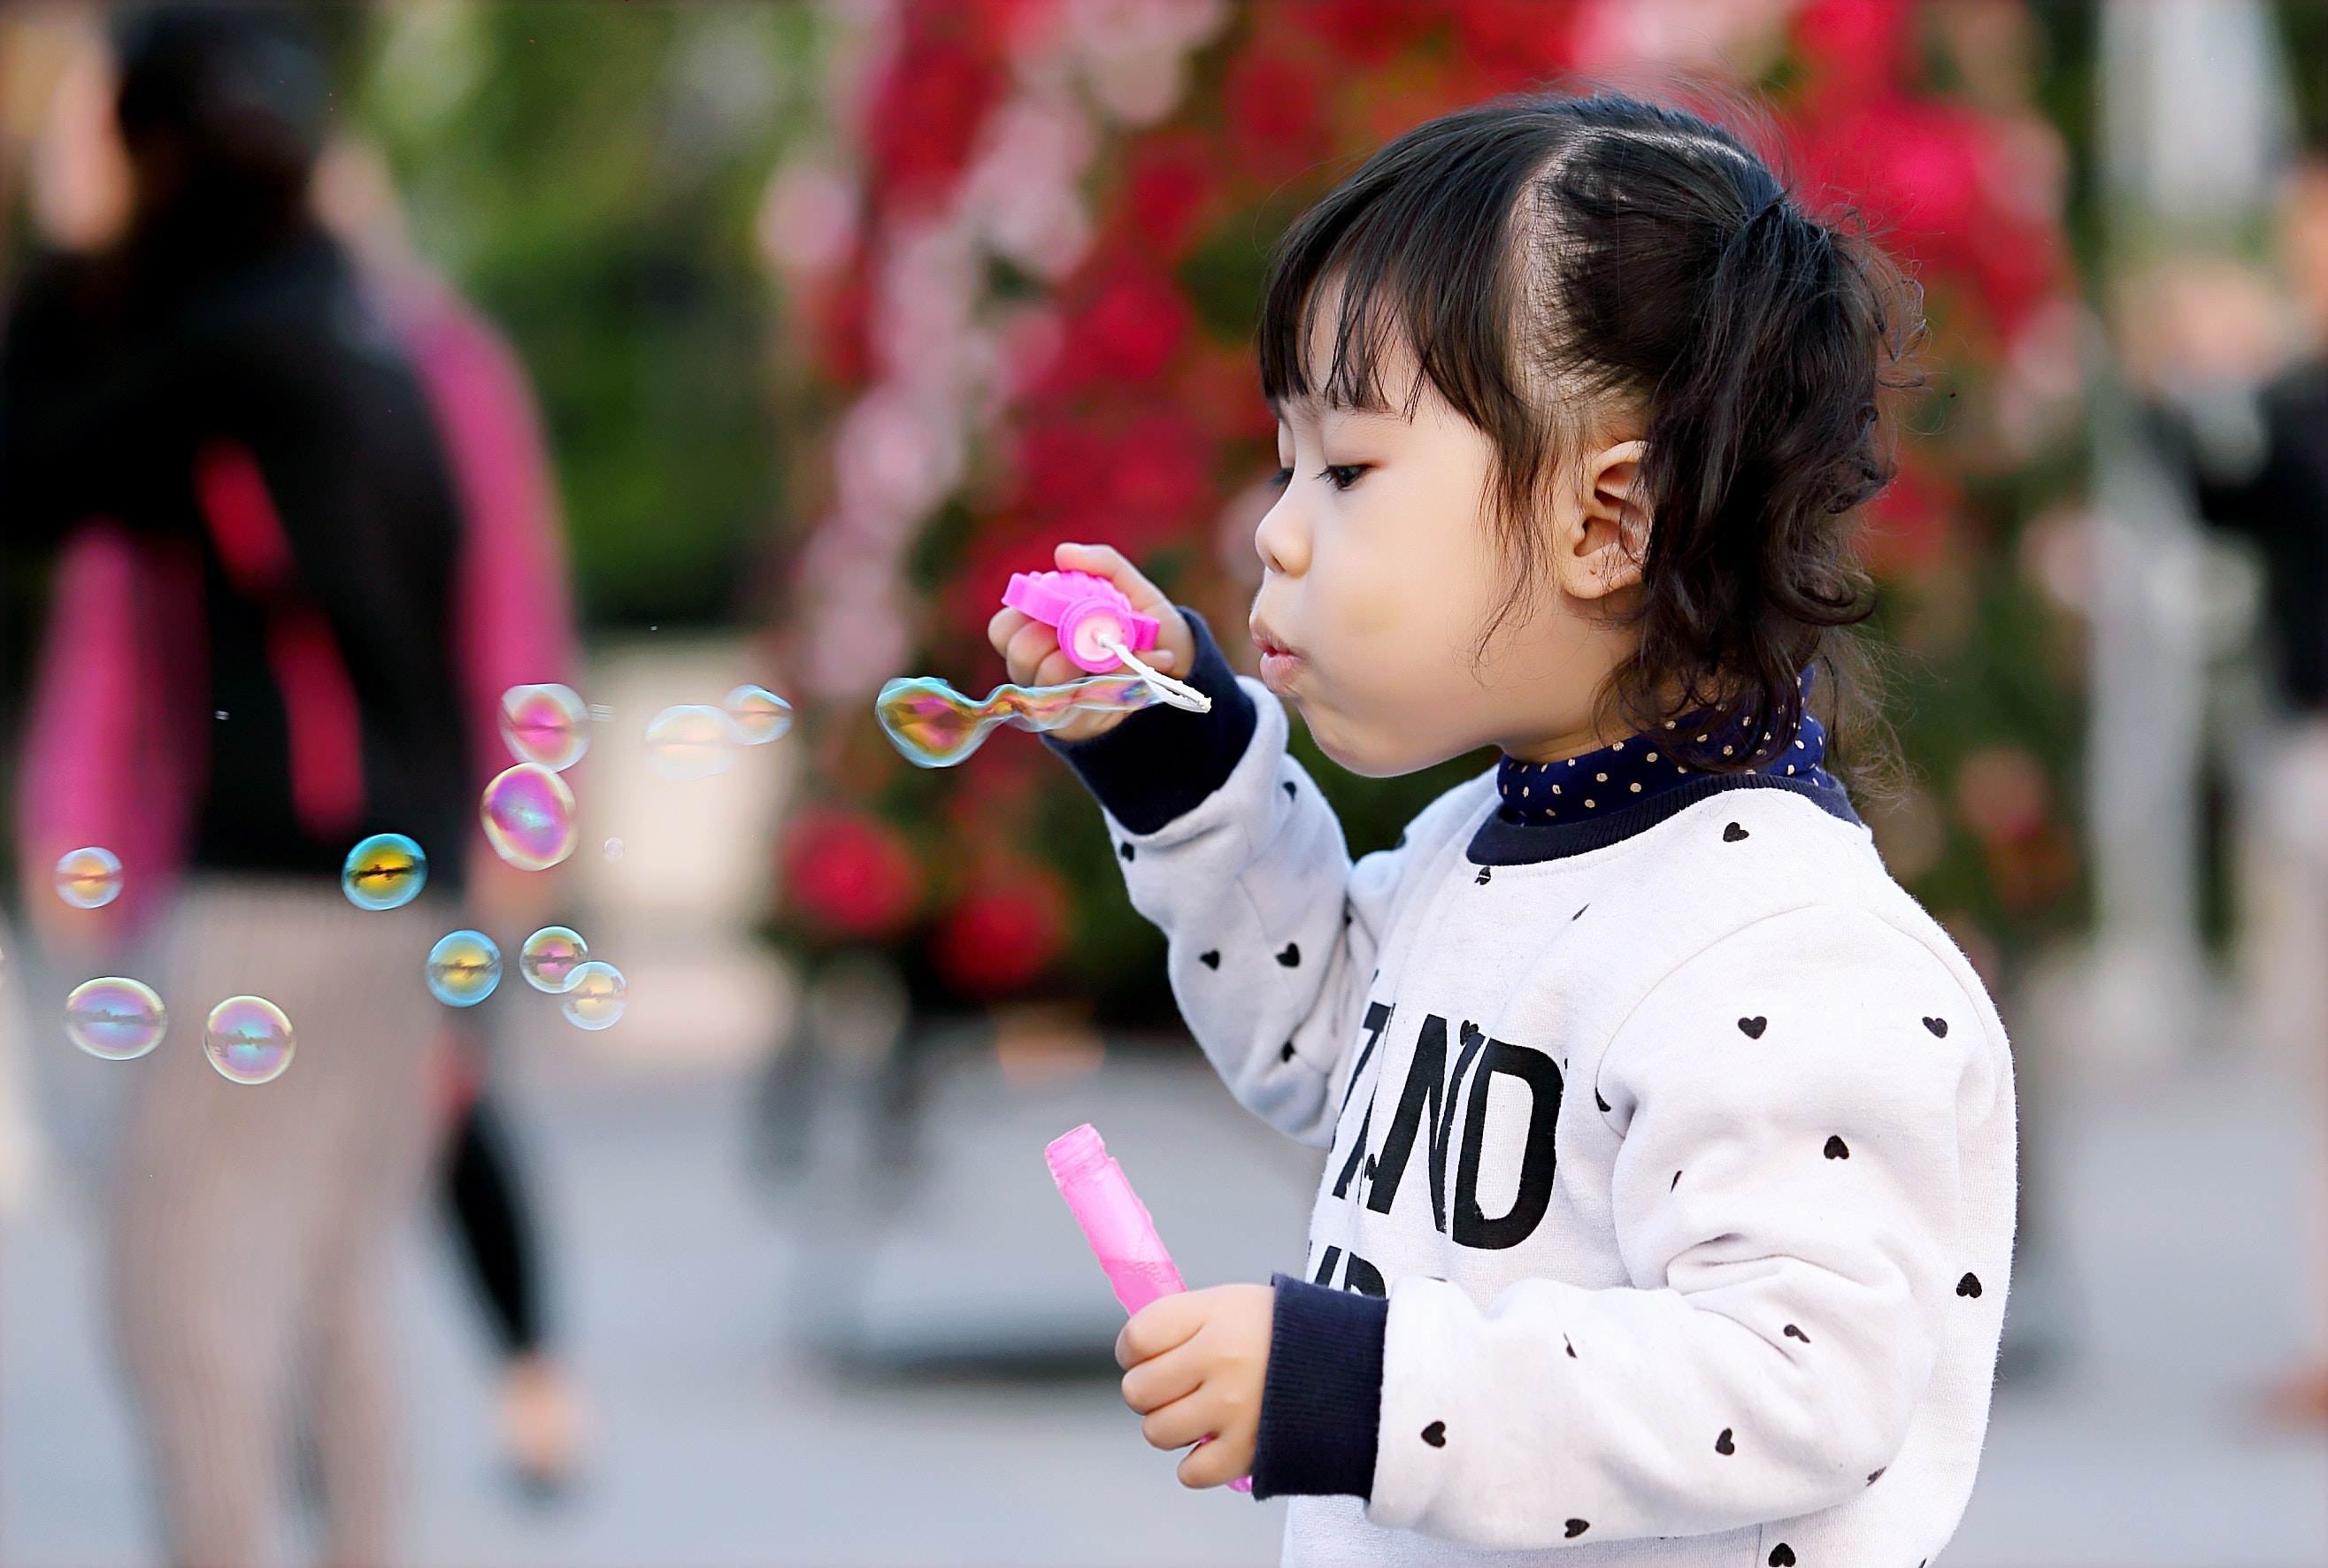 Toddler girl wearing white and black sweater holding plastic bottle of bubbles at daytime photo